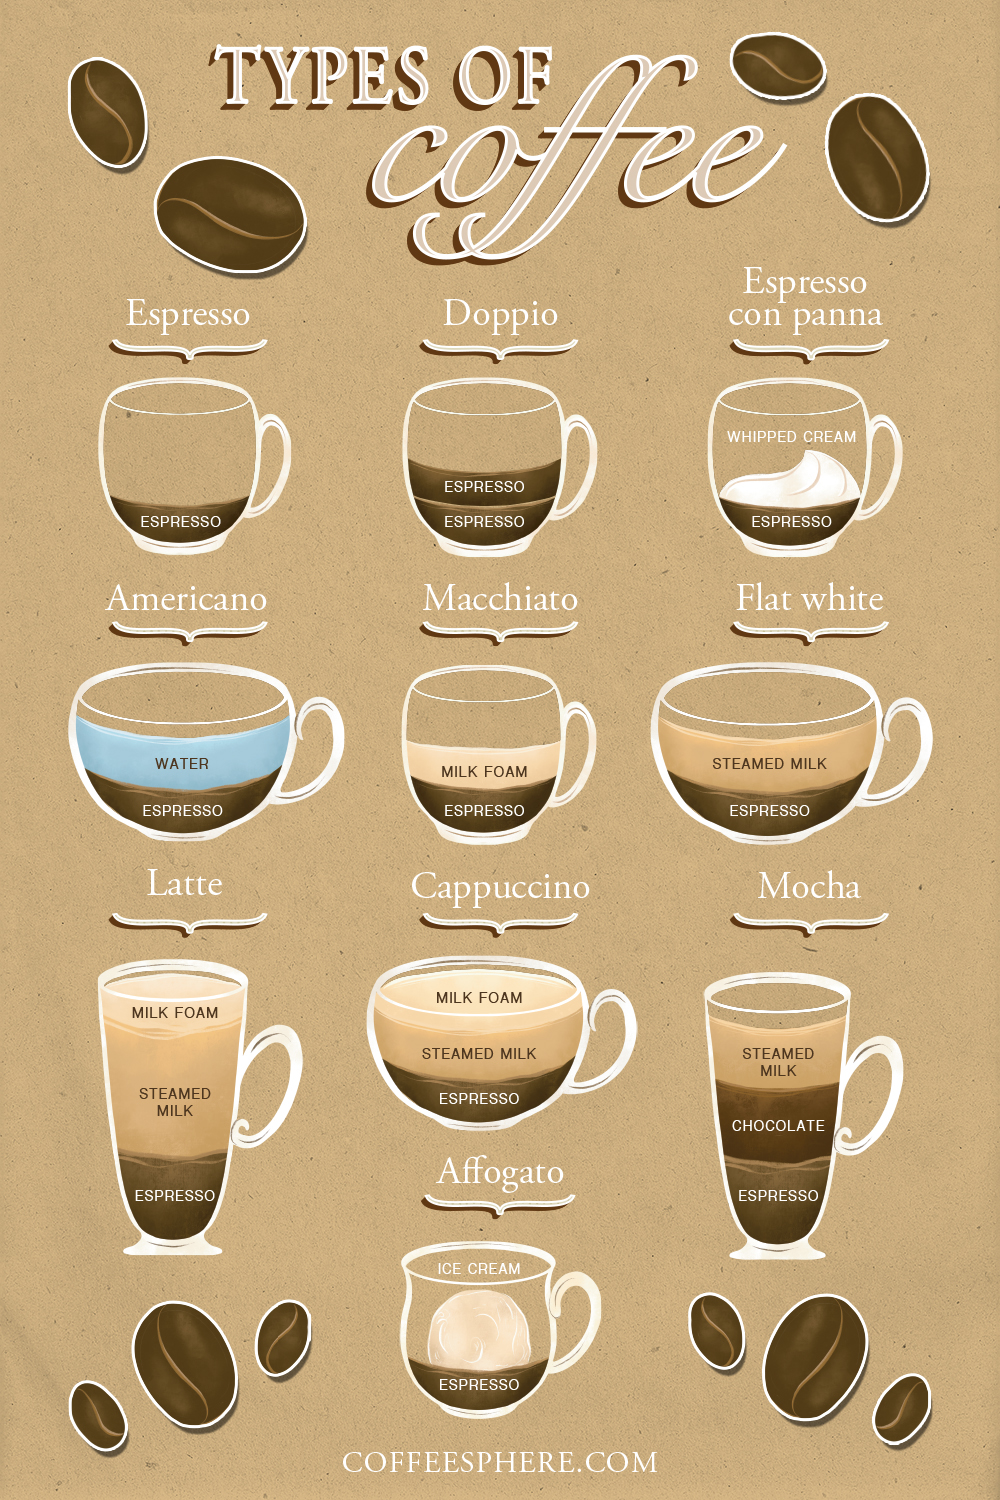 A Guide to 20+ Popular Types of Coffee (Plus an Infographic!)